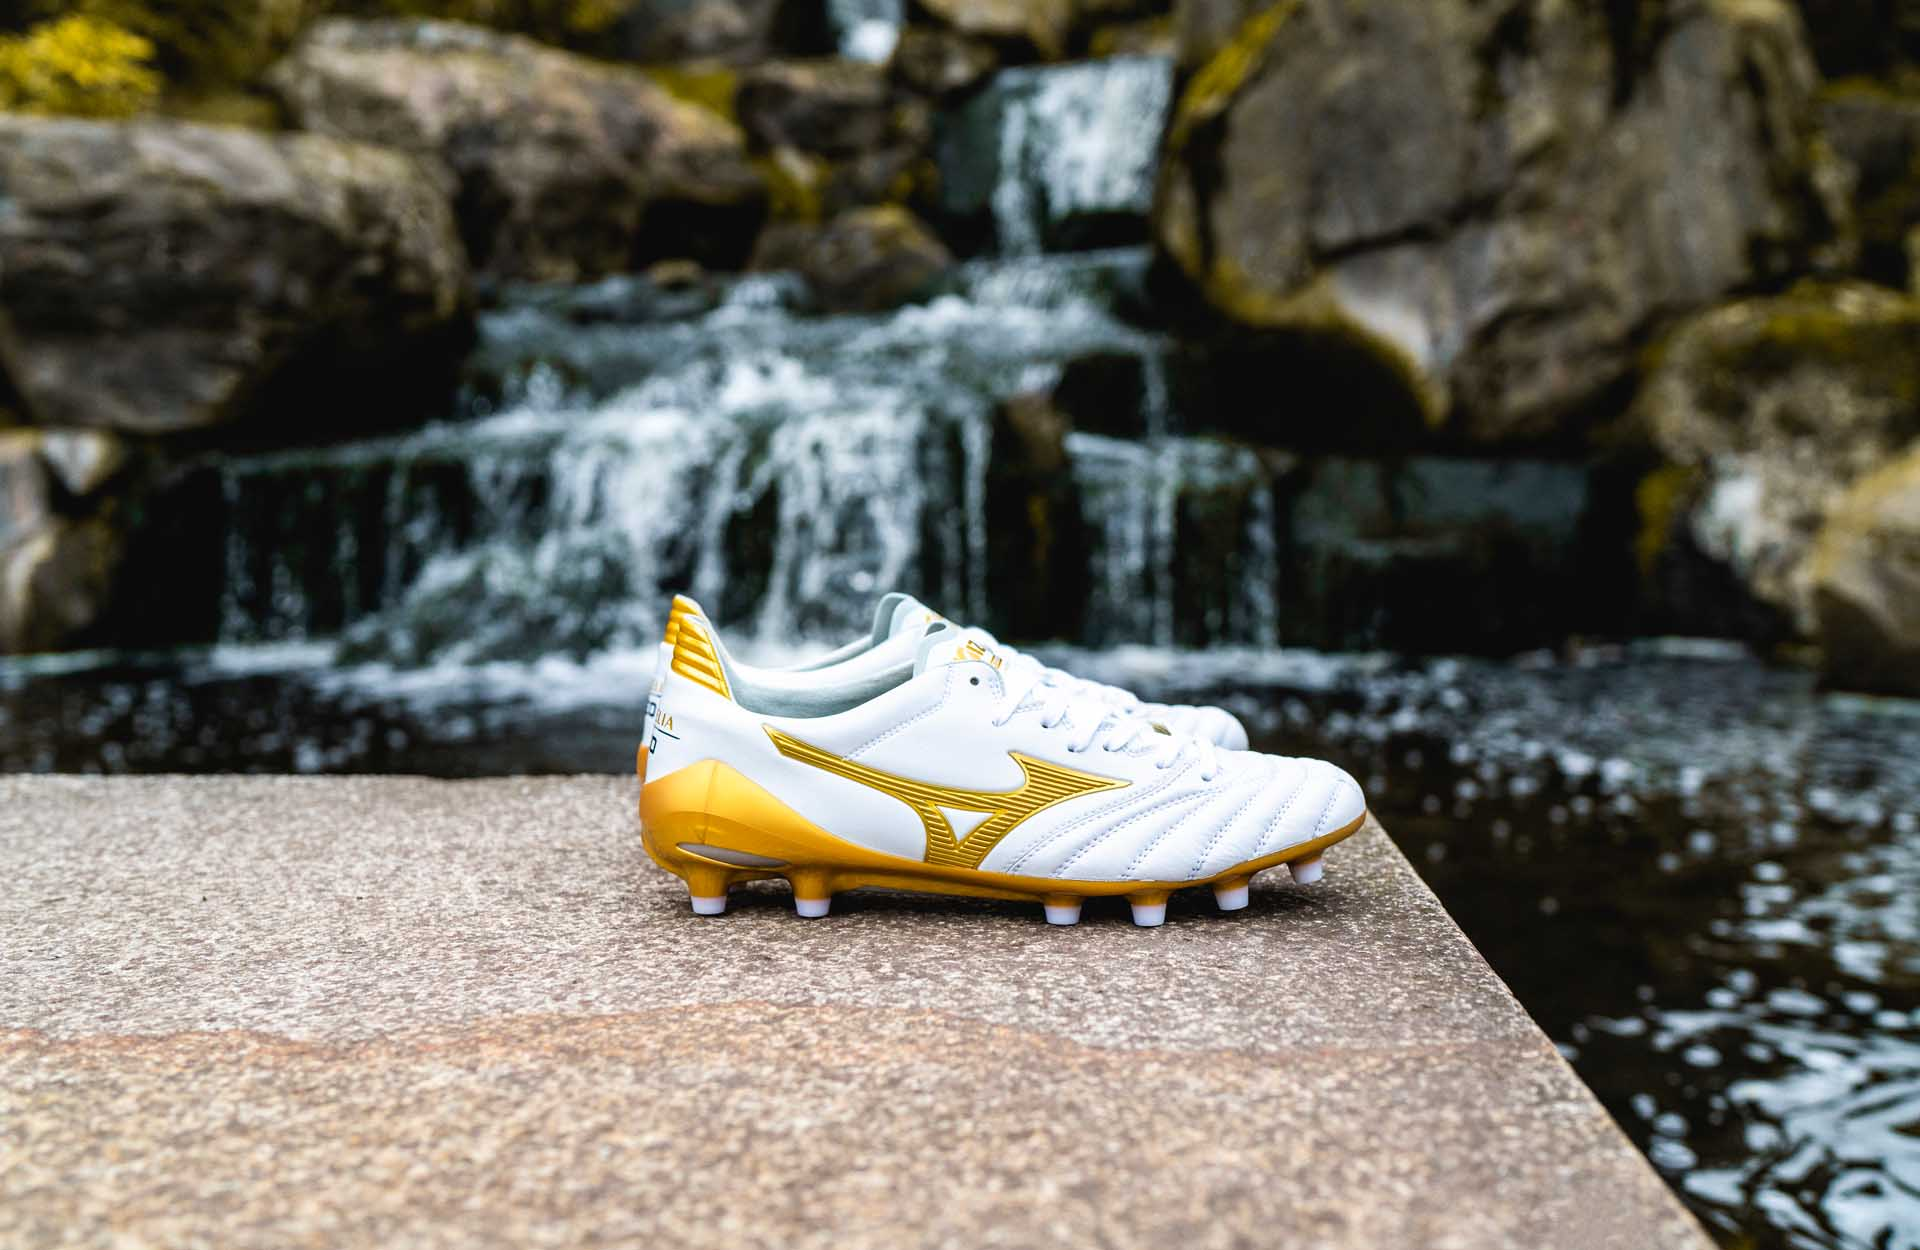 Giày đá banh Mizuno Morelia II Made in Japan